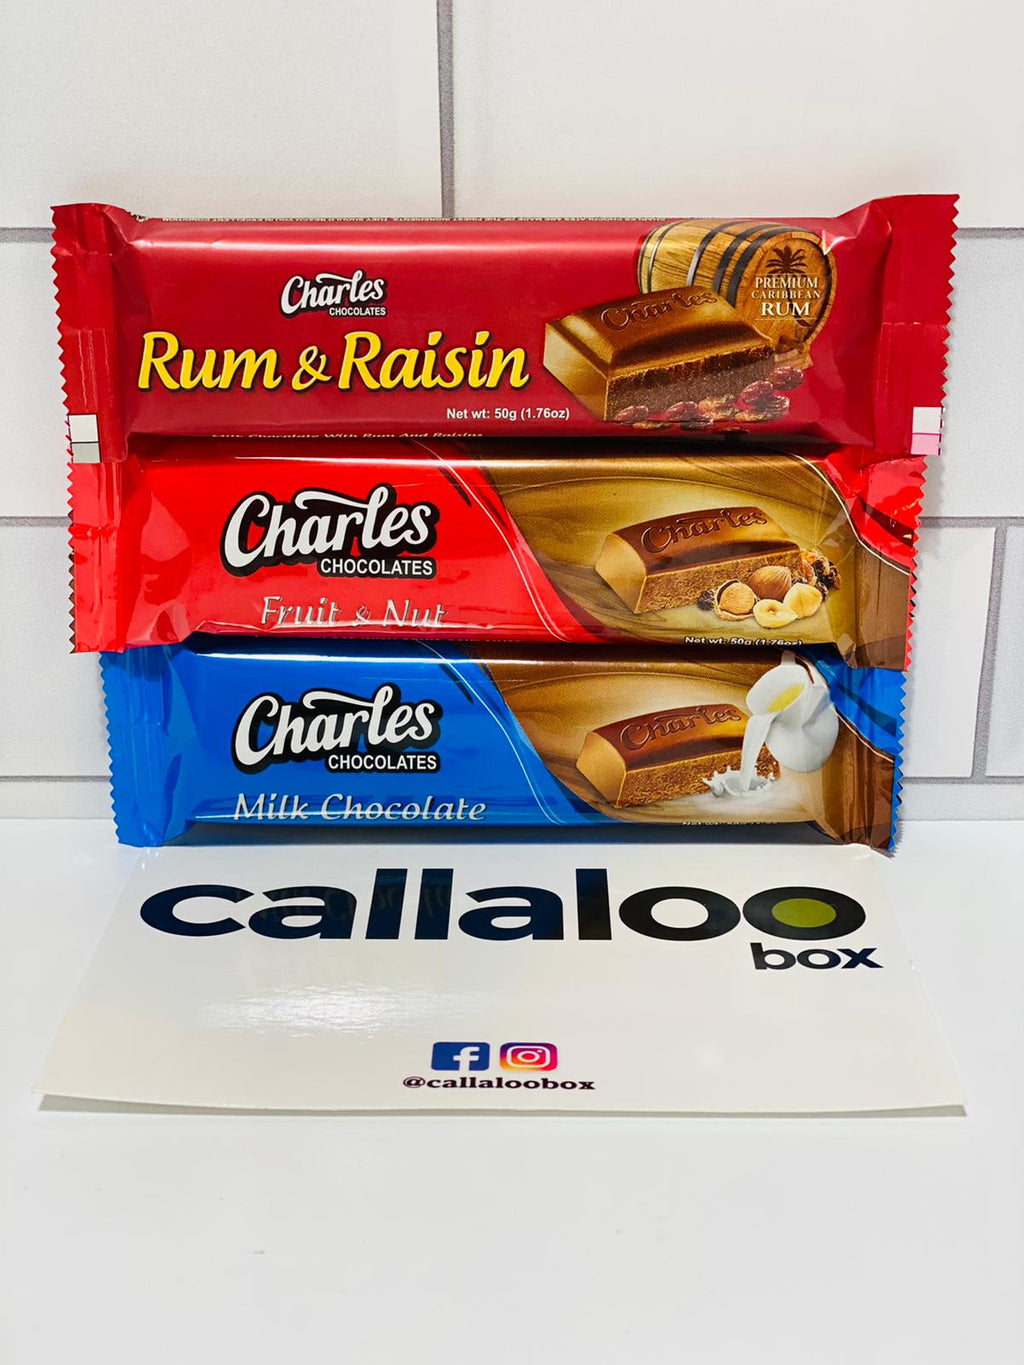 Callaloo Box Trinidad and Tobago Caribbean subscription box service Caribbean Online grocery__Charles Chocolate Rum Raisin Fruit Nut Milk Chocolate Bar-3-Pack